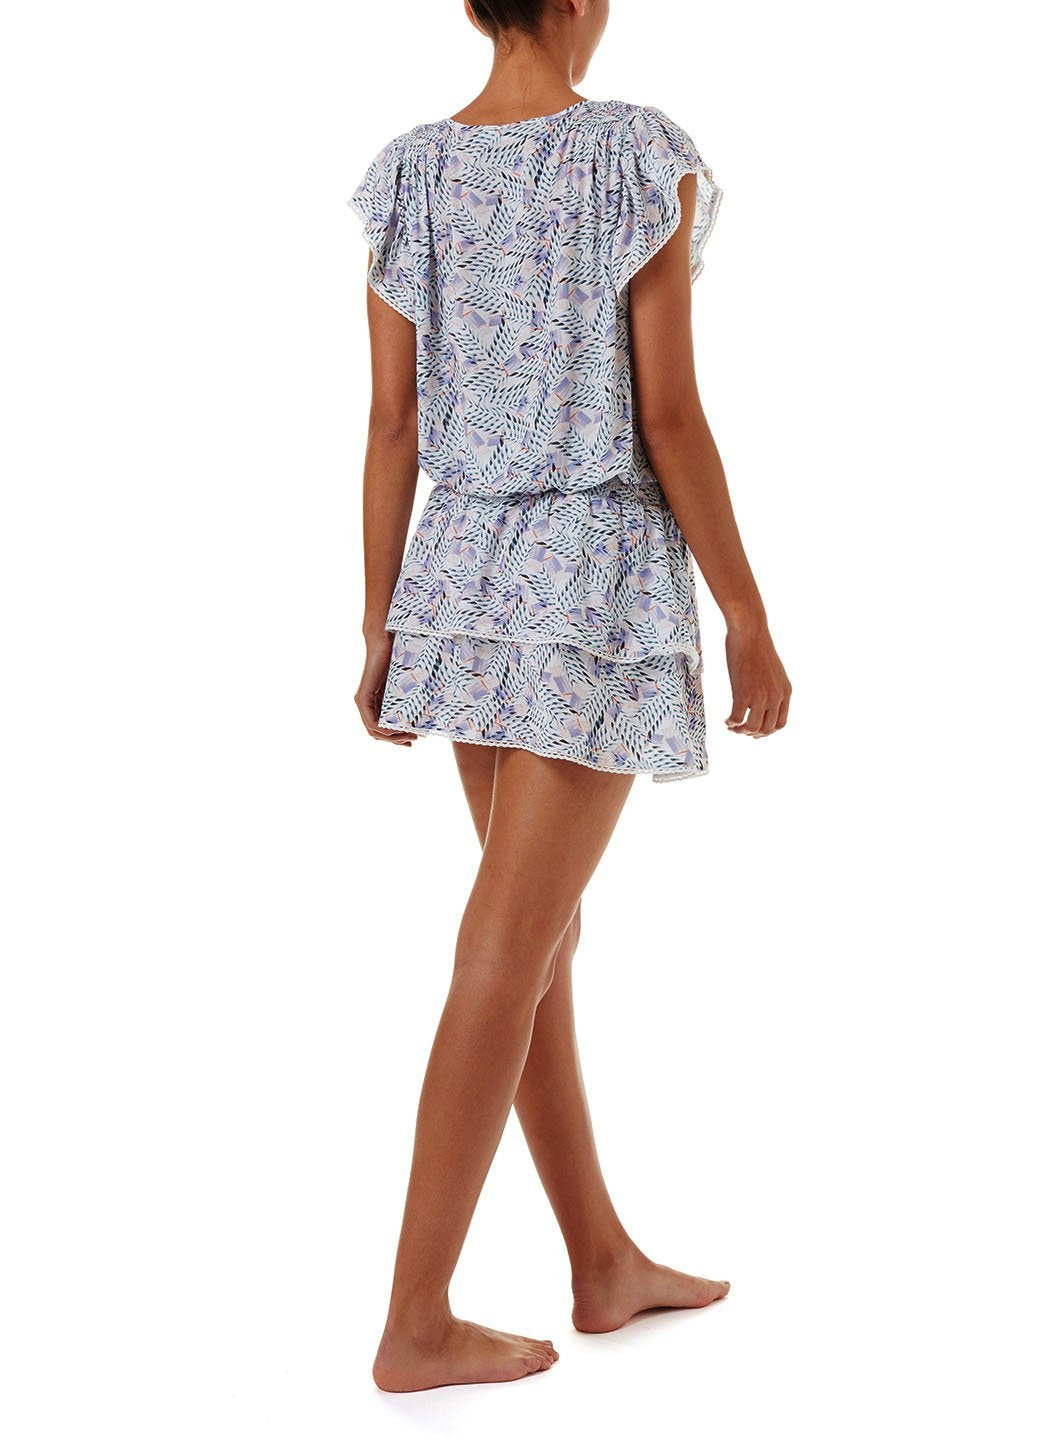 keri azari short frill beach dress 2019 B